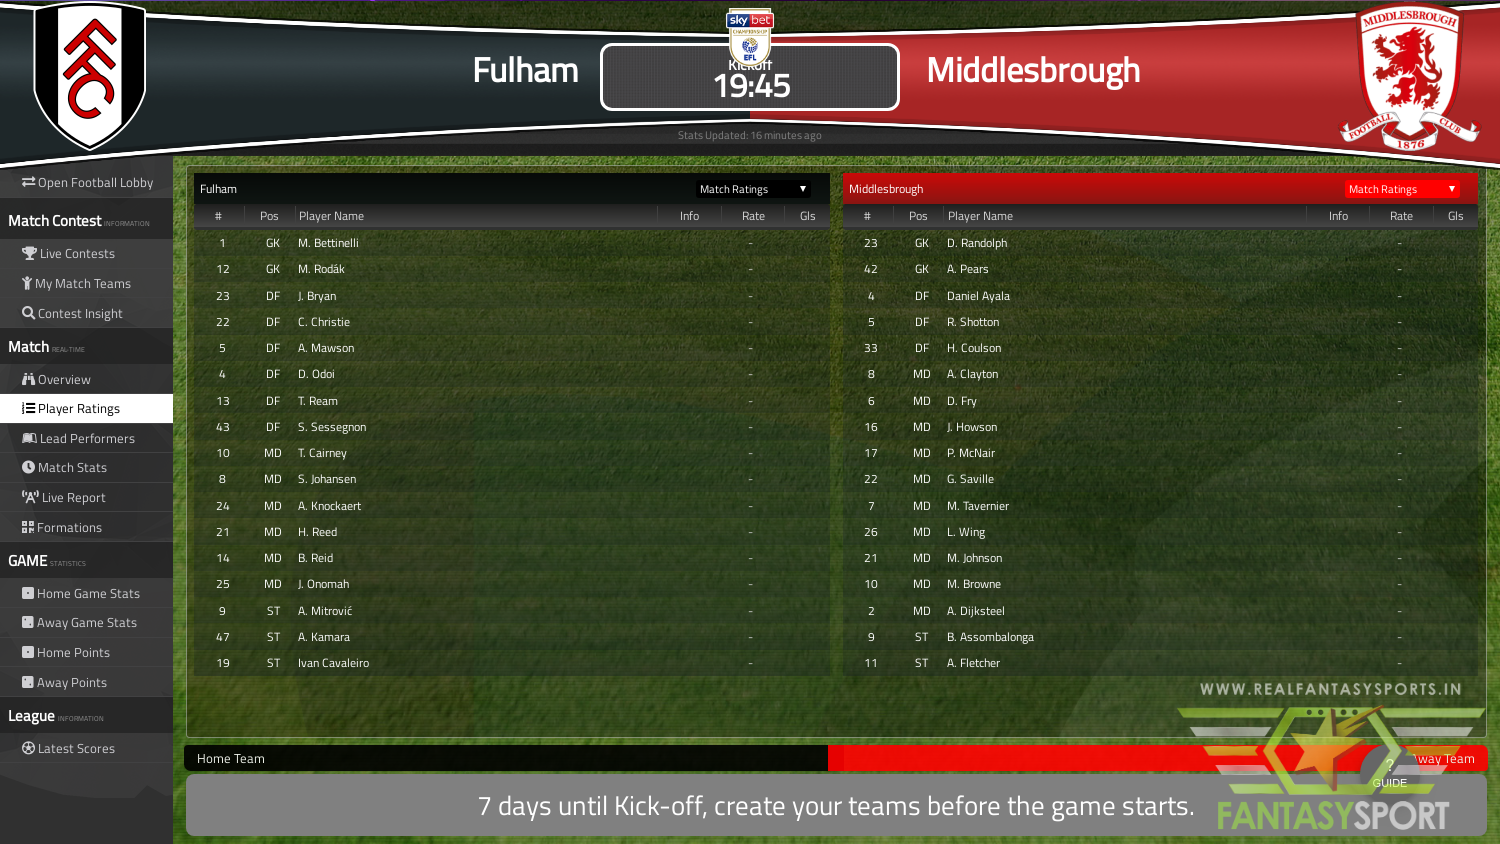 Dream Team Pick For Fulham Vs Middlesbrough